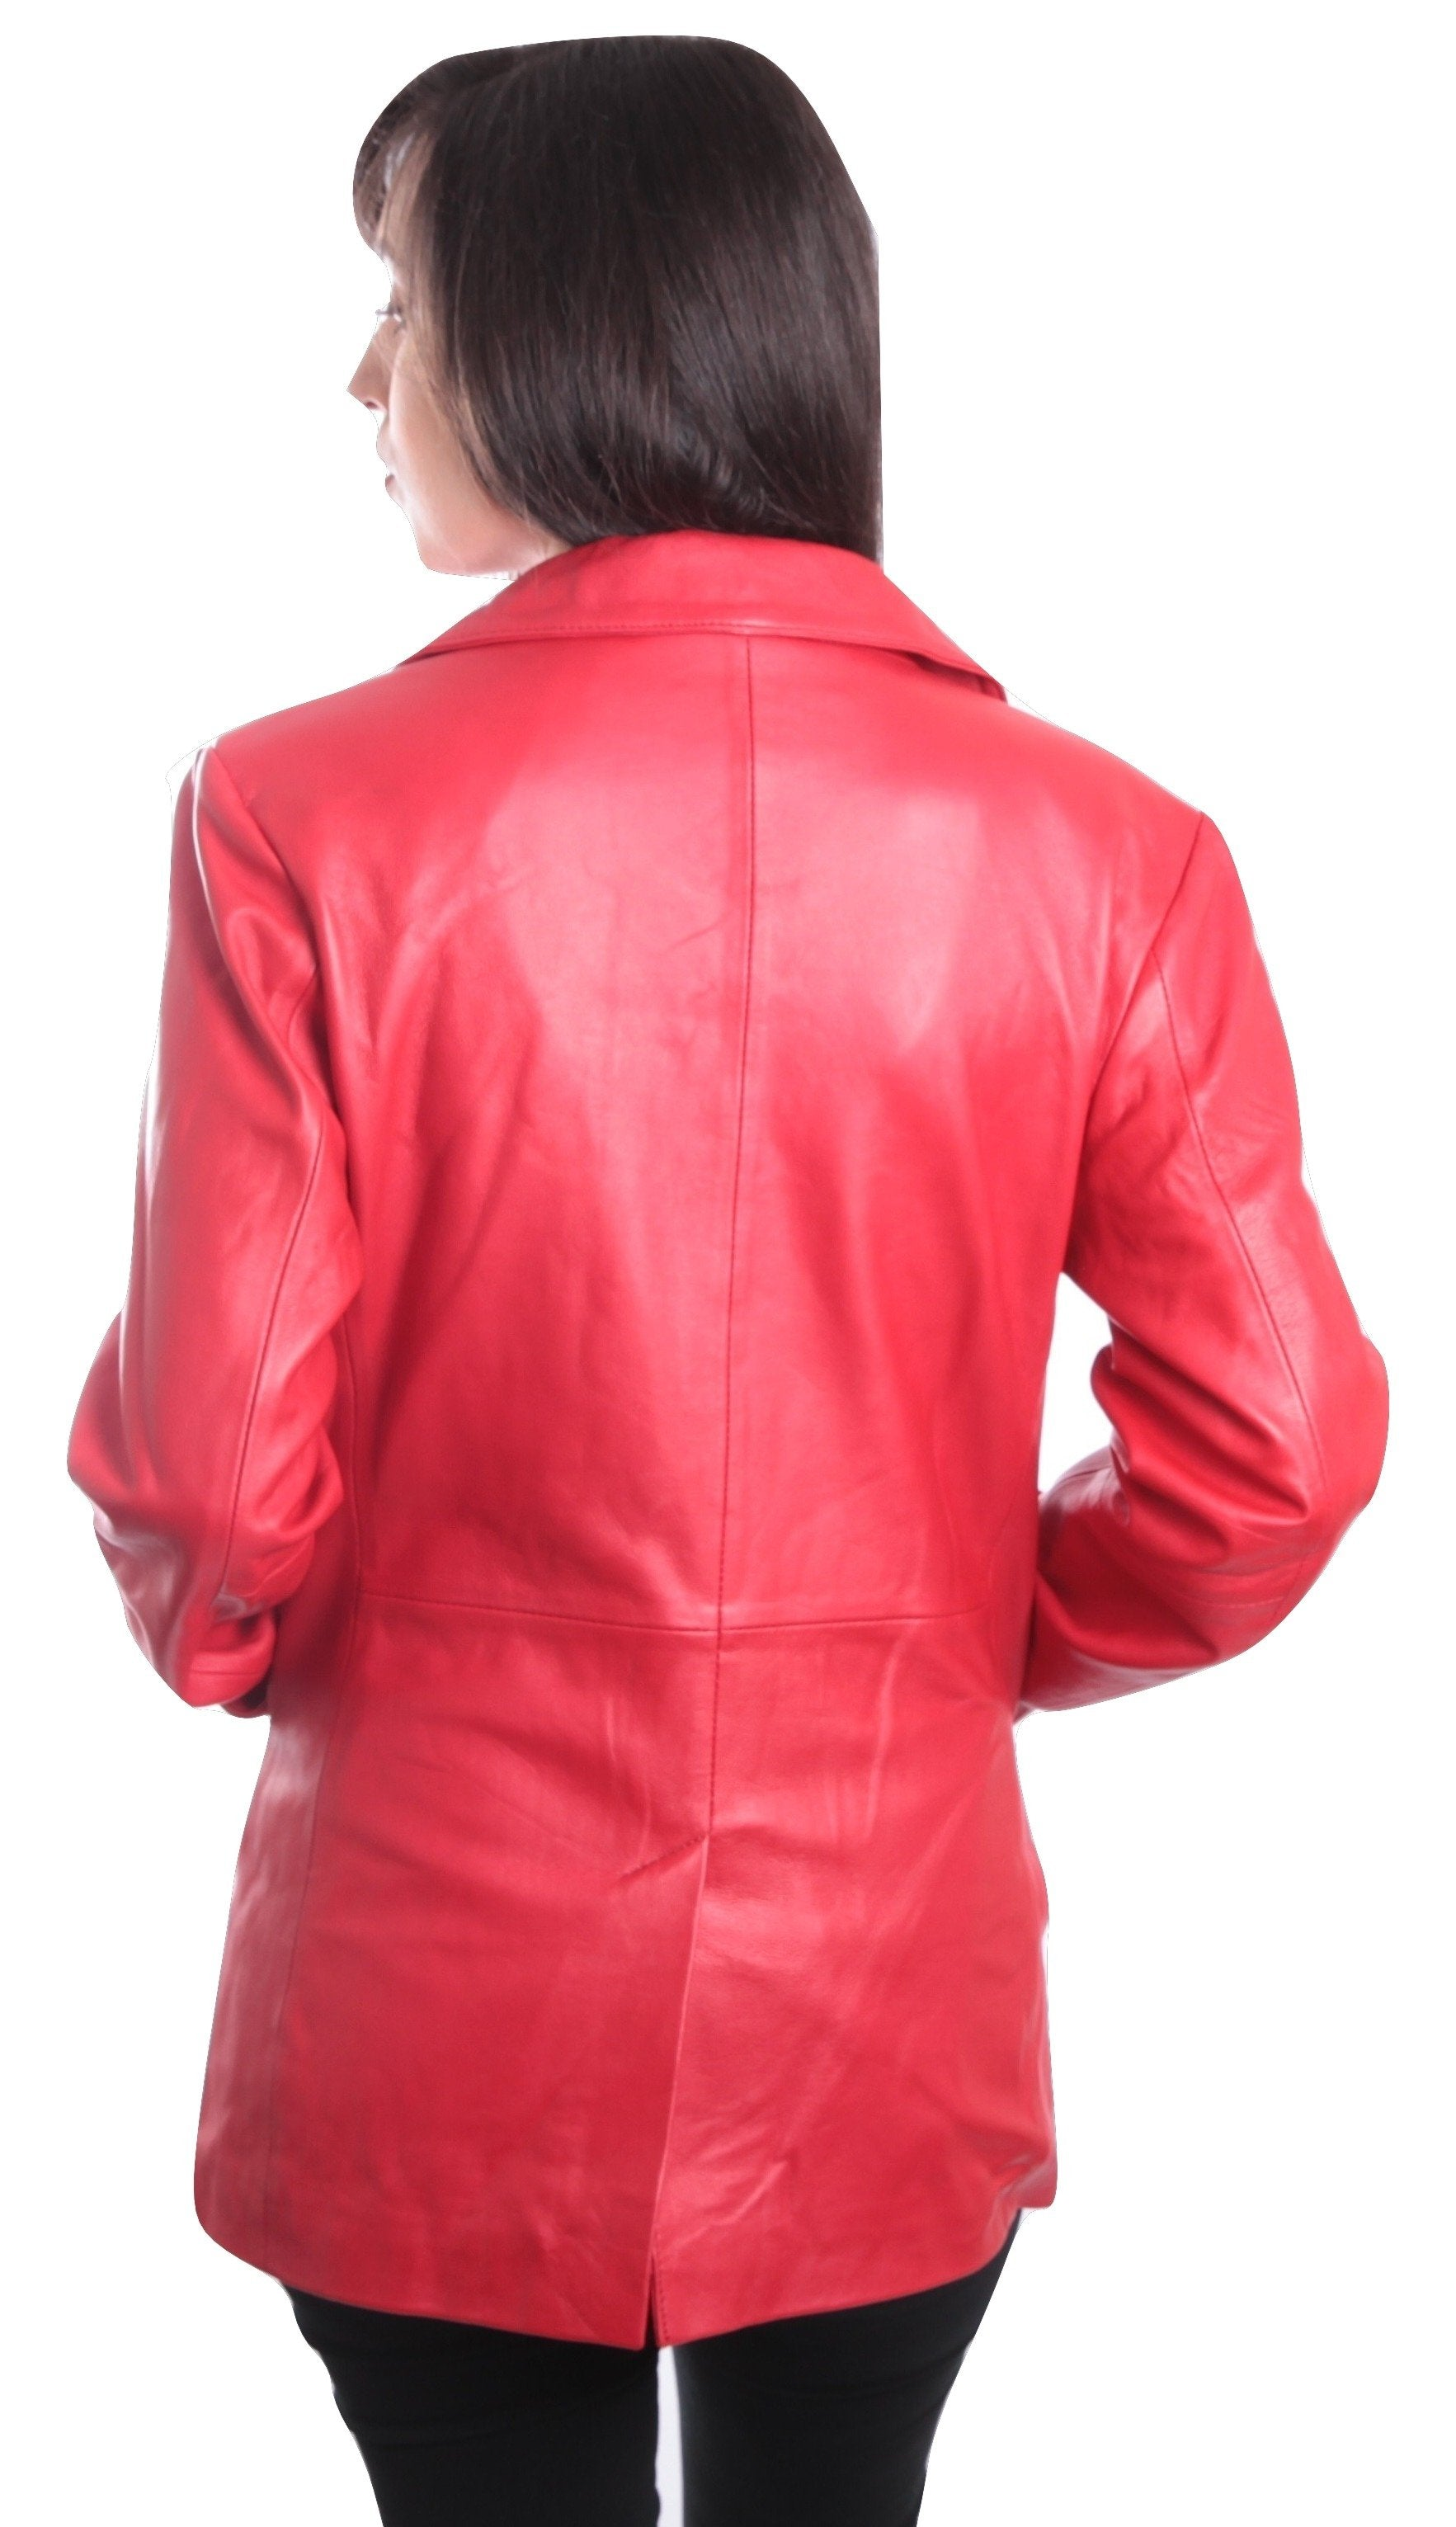 Womens Lipstick Red Hot 3 Button Leather Blazer, [option2] - Fadcloset